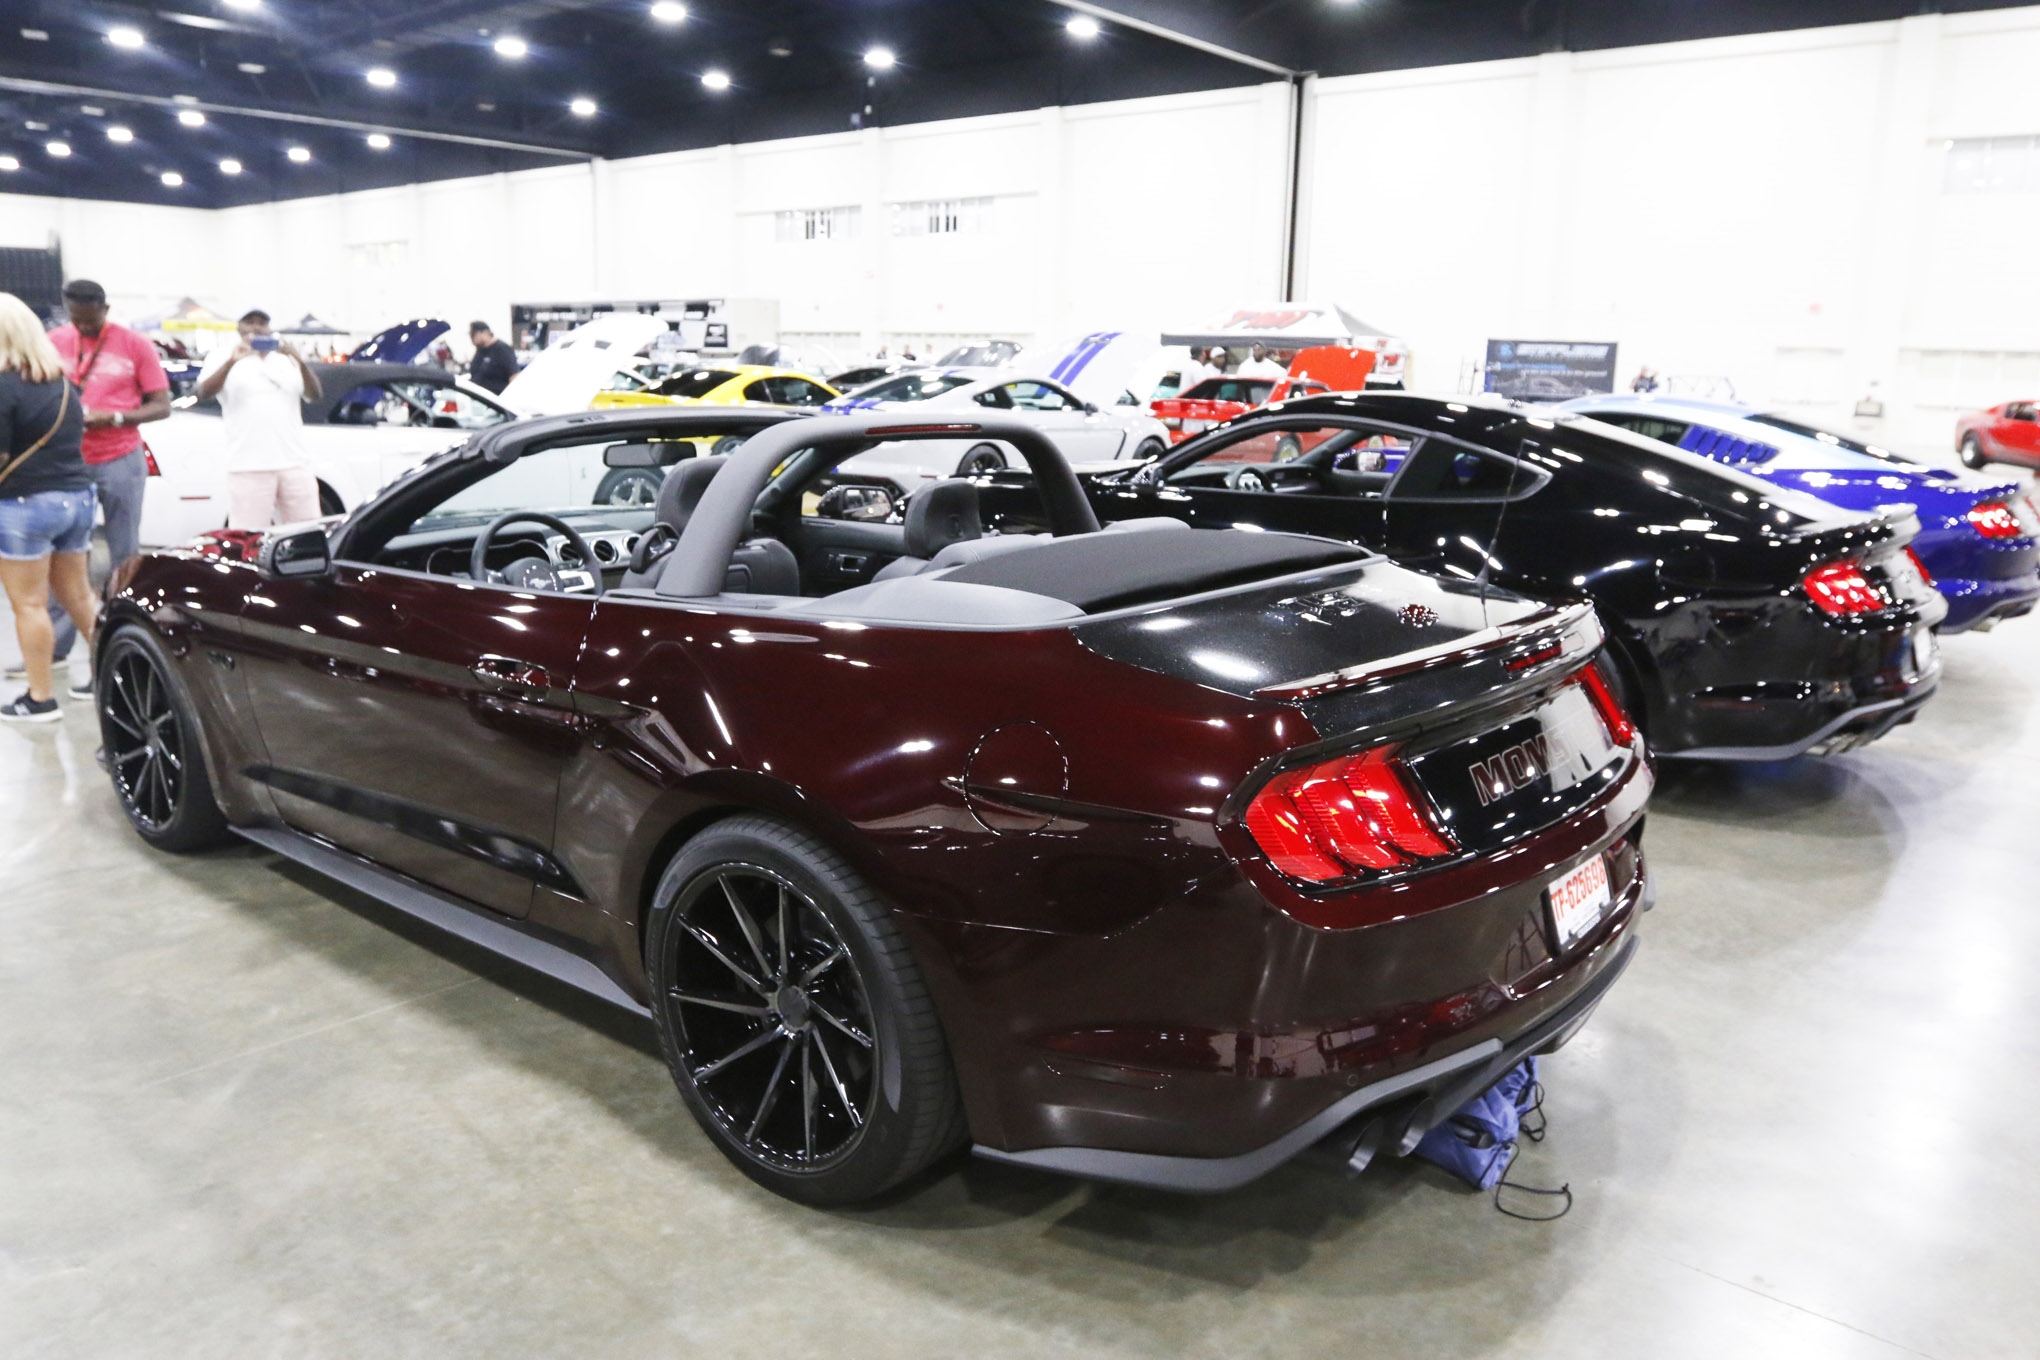 09 2018 Mustang Week Edition Mustang Convertible Rear